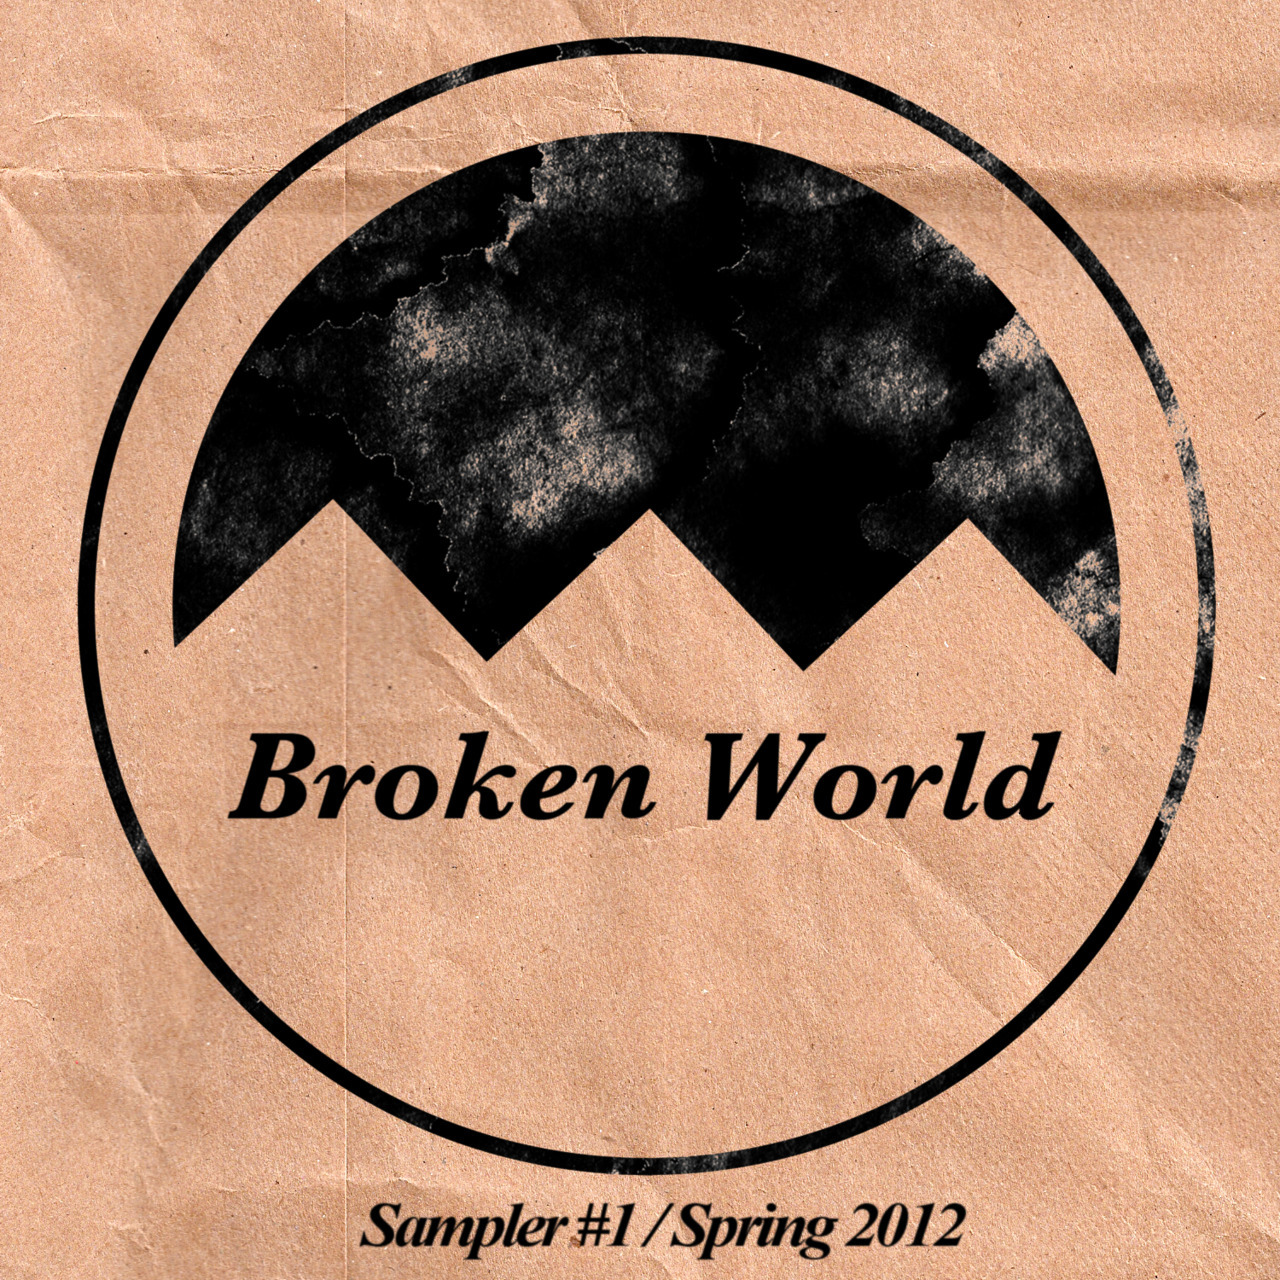 theworldisa:  Hey! We started our own record label called Broken World Media. To give you an idea of what we have planned I've compiled this free sampler containing 12 tracks from bands that we will be working with. Including songs from Spirit Night, Dads, Lion Cub, One Hundred Year Ocean, The World is a Beautiful Place & I am No Longer Afraid to Die, David Bello and His God-Given Right, Fat History Month, Osier Bed, and Deer Leap. Stream / Download here:http://brokenworldmedia.tumblr.com/sampler/Also, check out our website / tumblr for more information on upcoming releases: http://www.brokenworldmedia.com/ Plz reblog!  hey this looks important